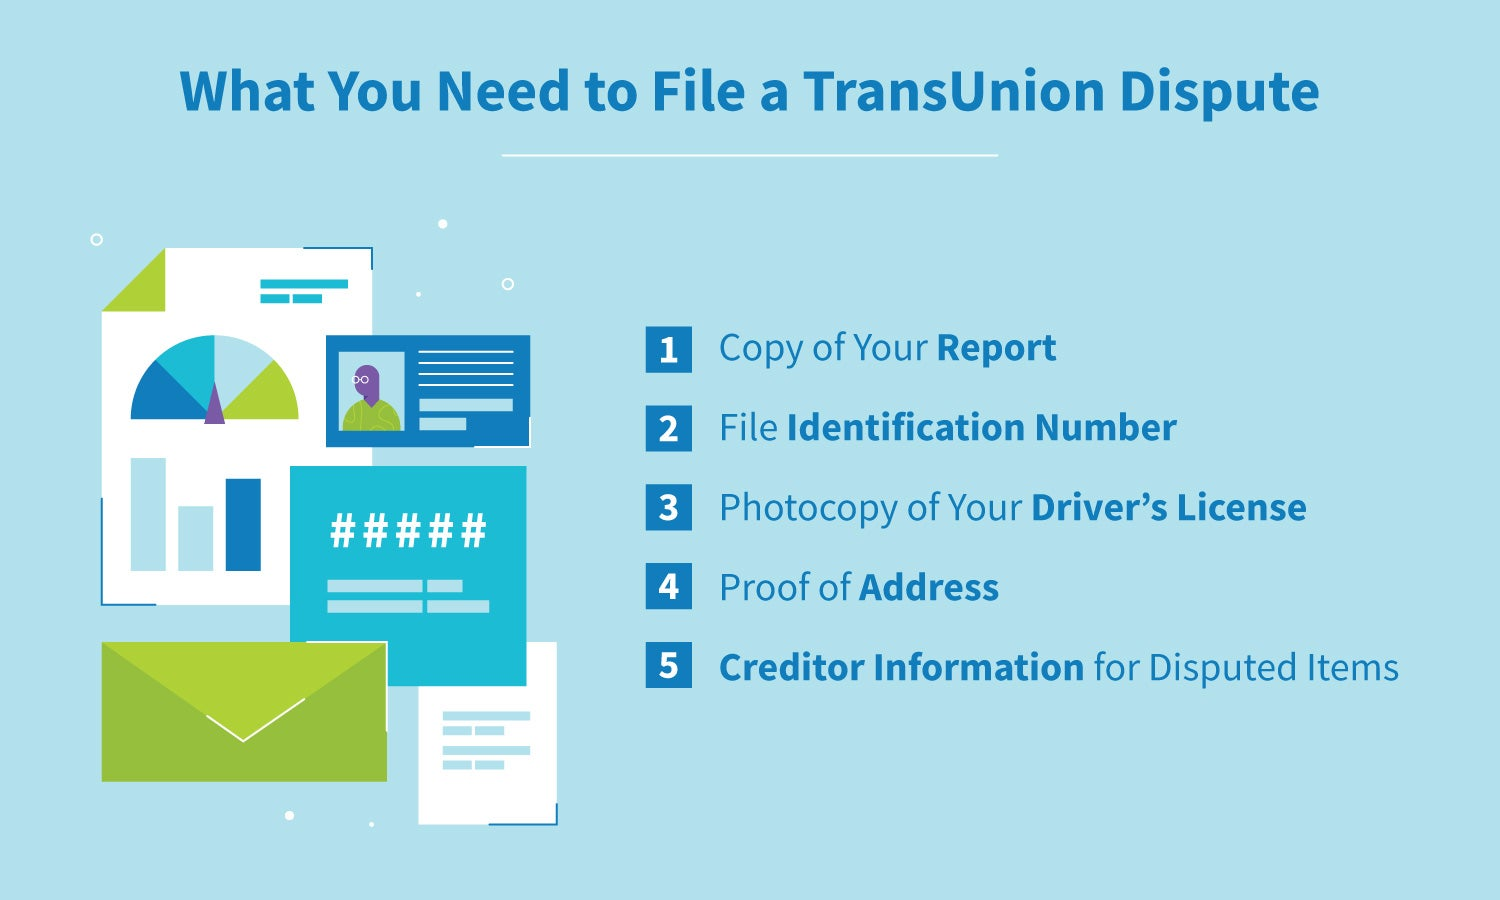 What you need to file a TransUnion Dispute - copy of your report, file identification number, driver's license, address, and creditor information